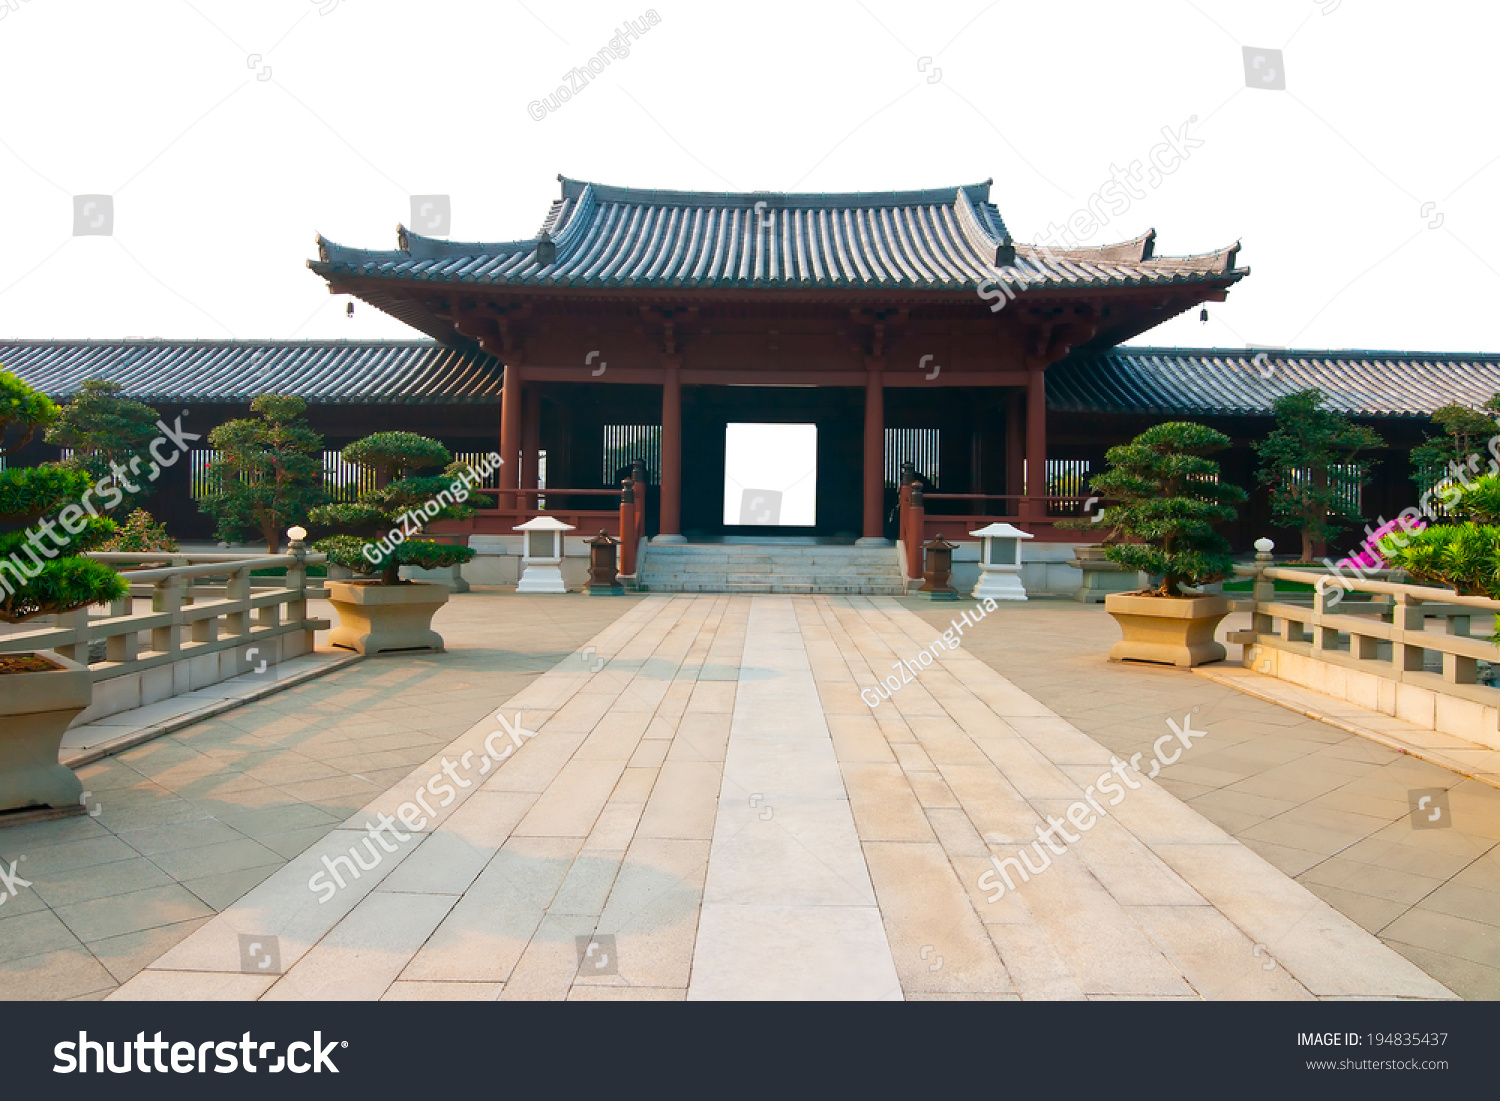 ancient chinese architecture on white background stock photo